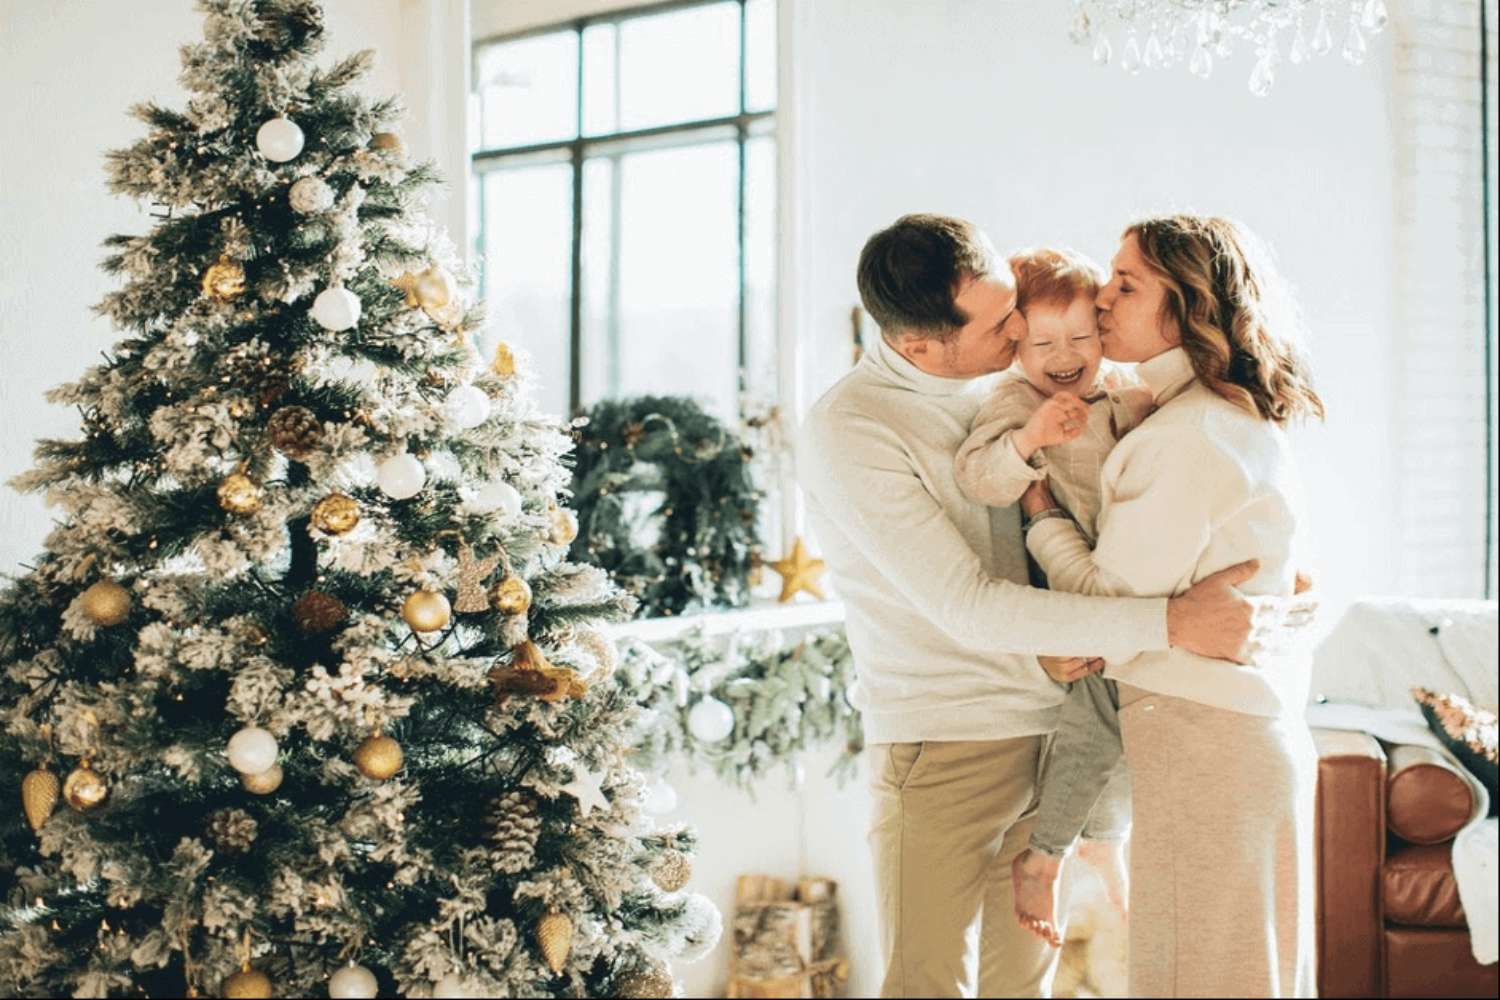 10 Home Decor DIY Trends You Can Try with Your Family This Winter